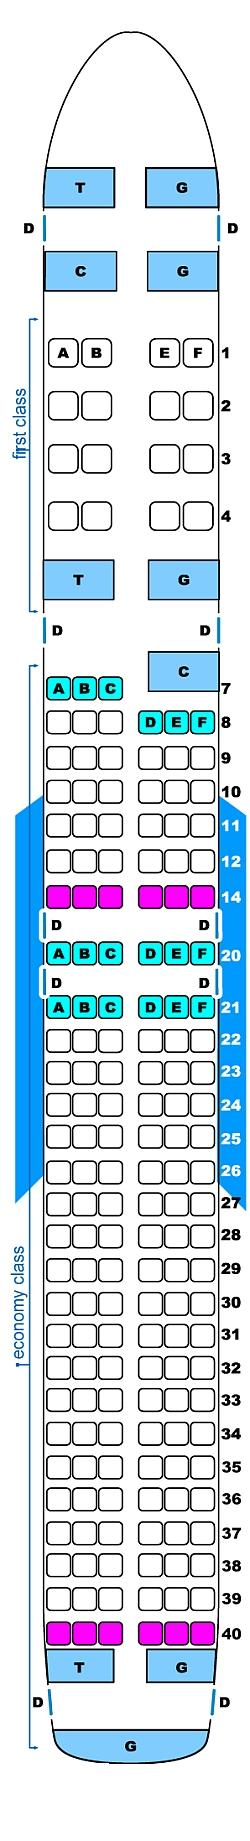 Seat map for Continental Airlines Boeing B757 200